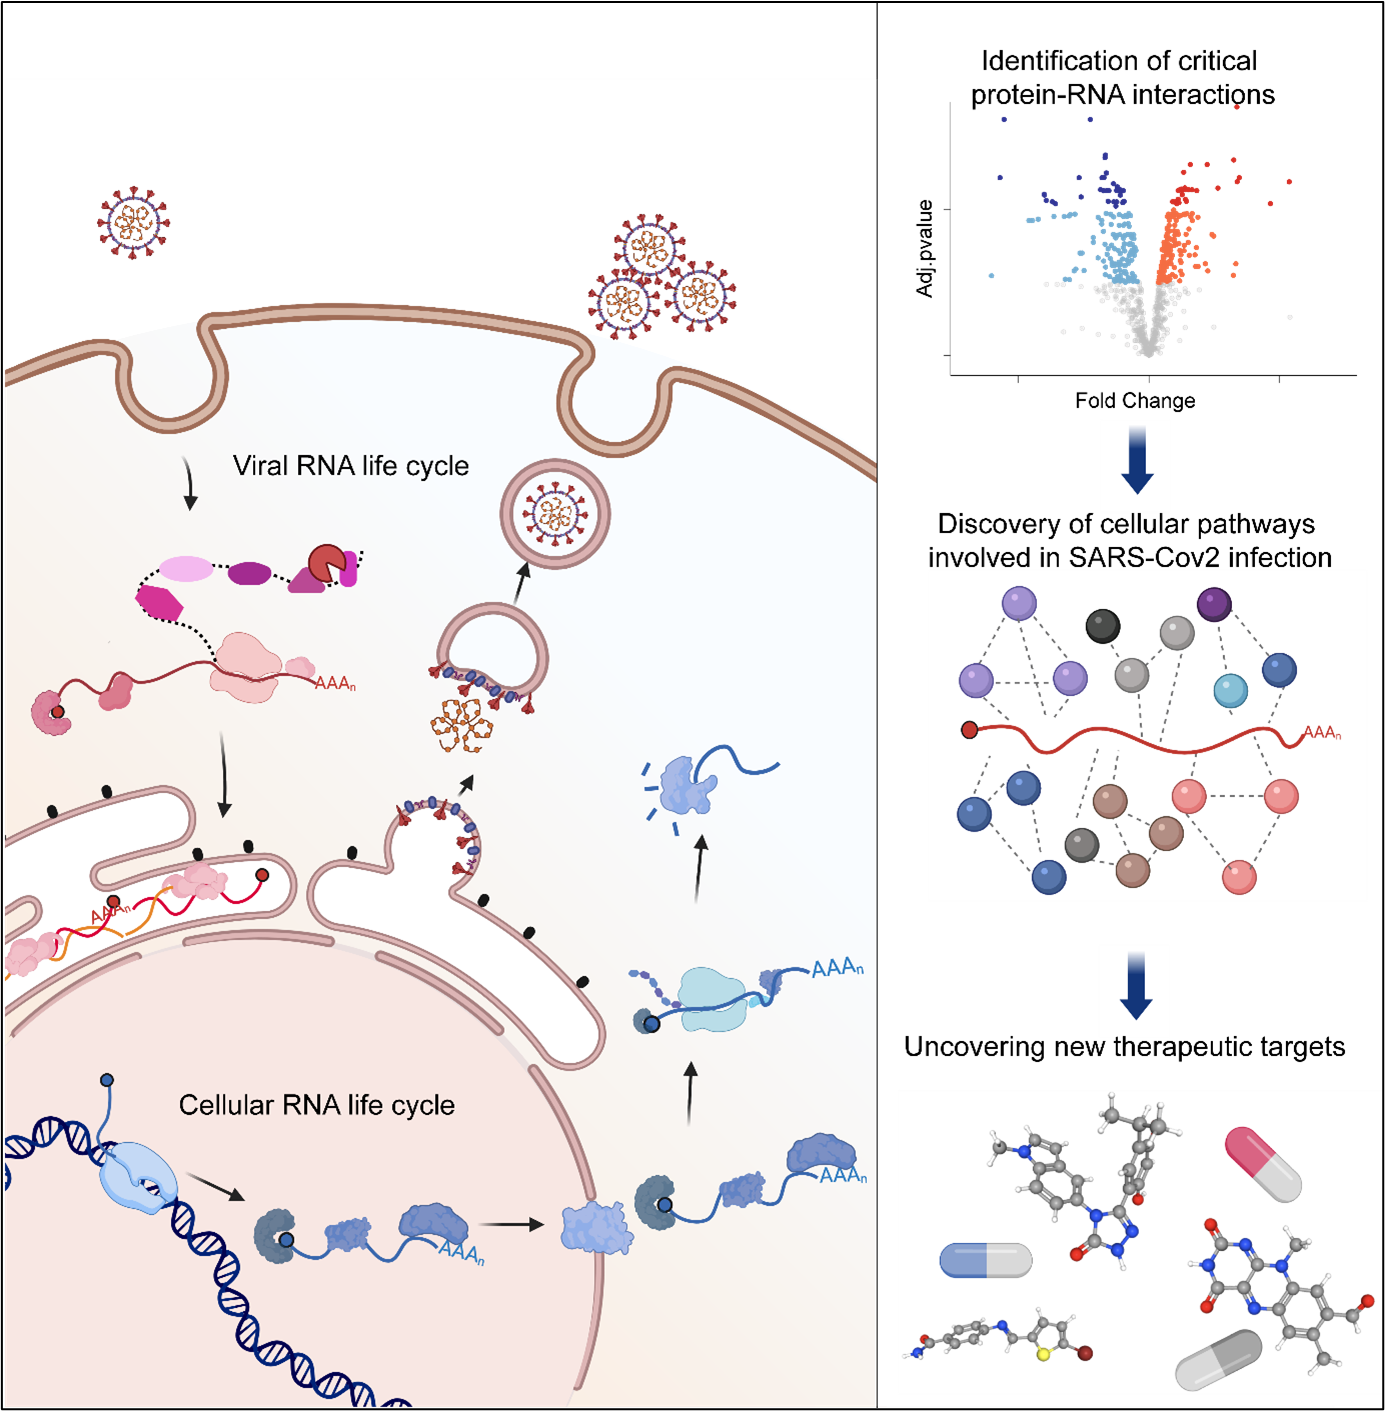 Diagram of how the RNA life cycle works